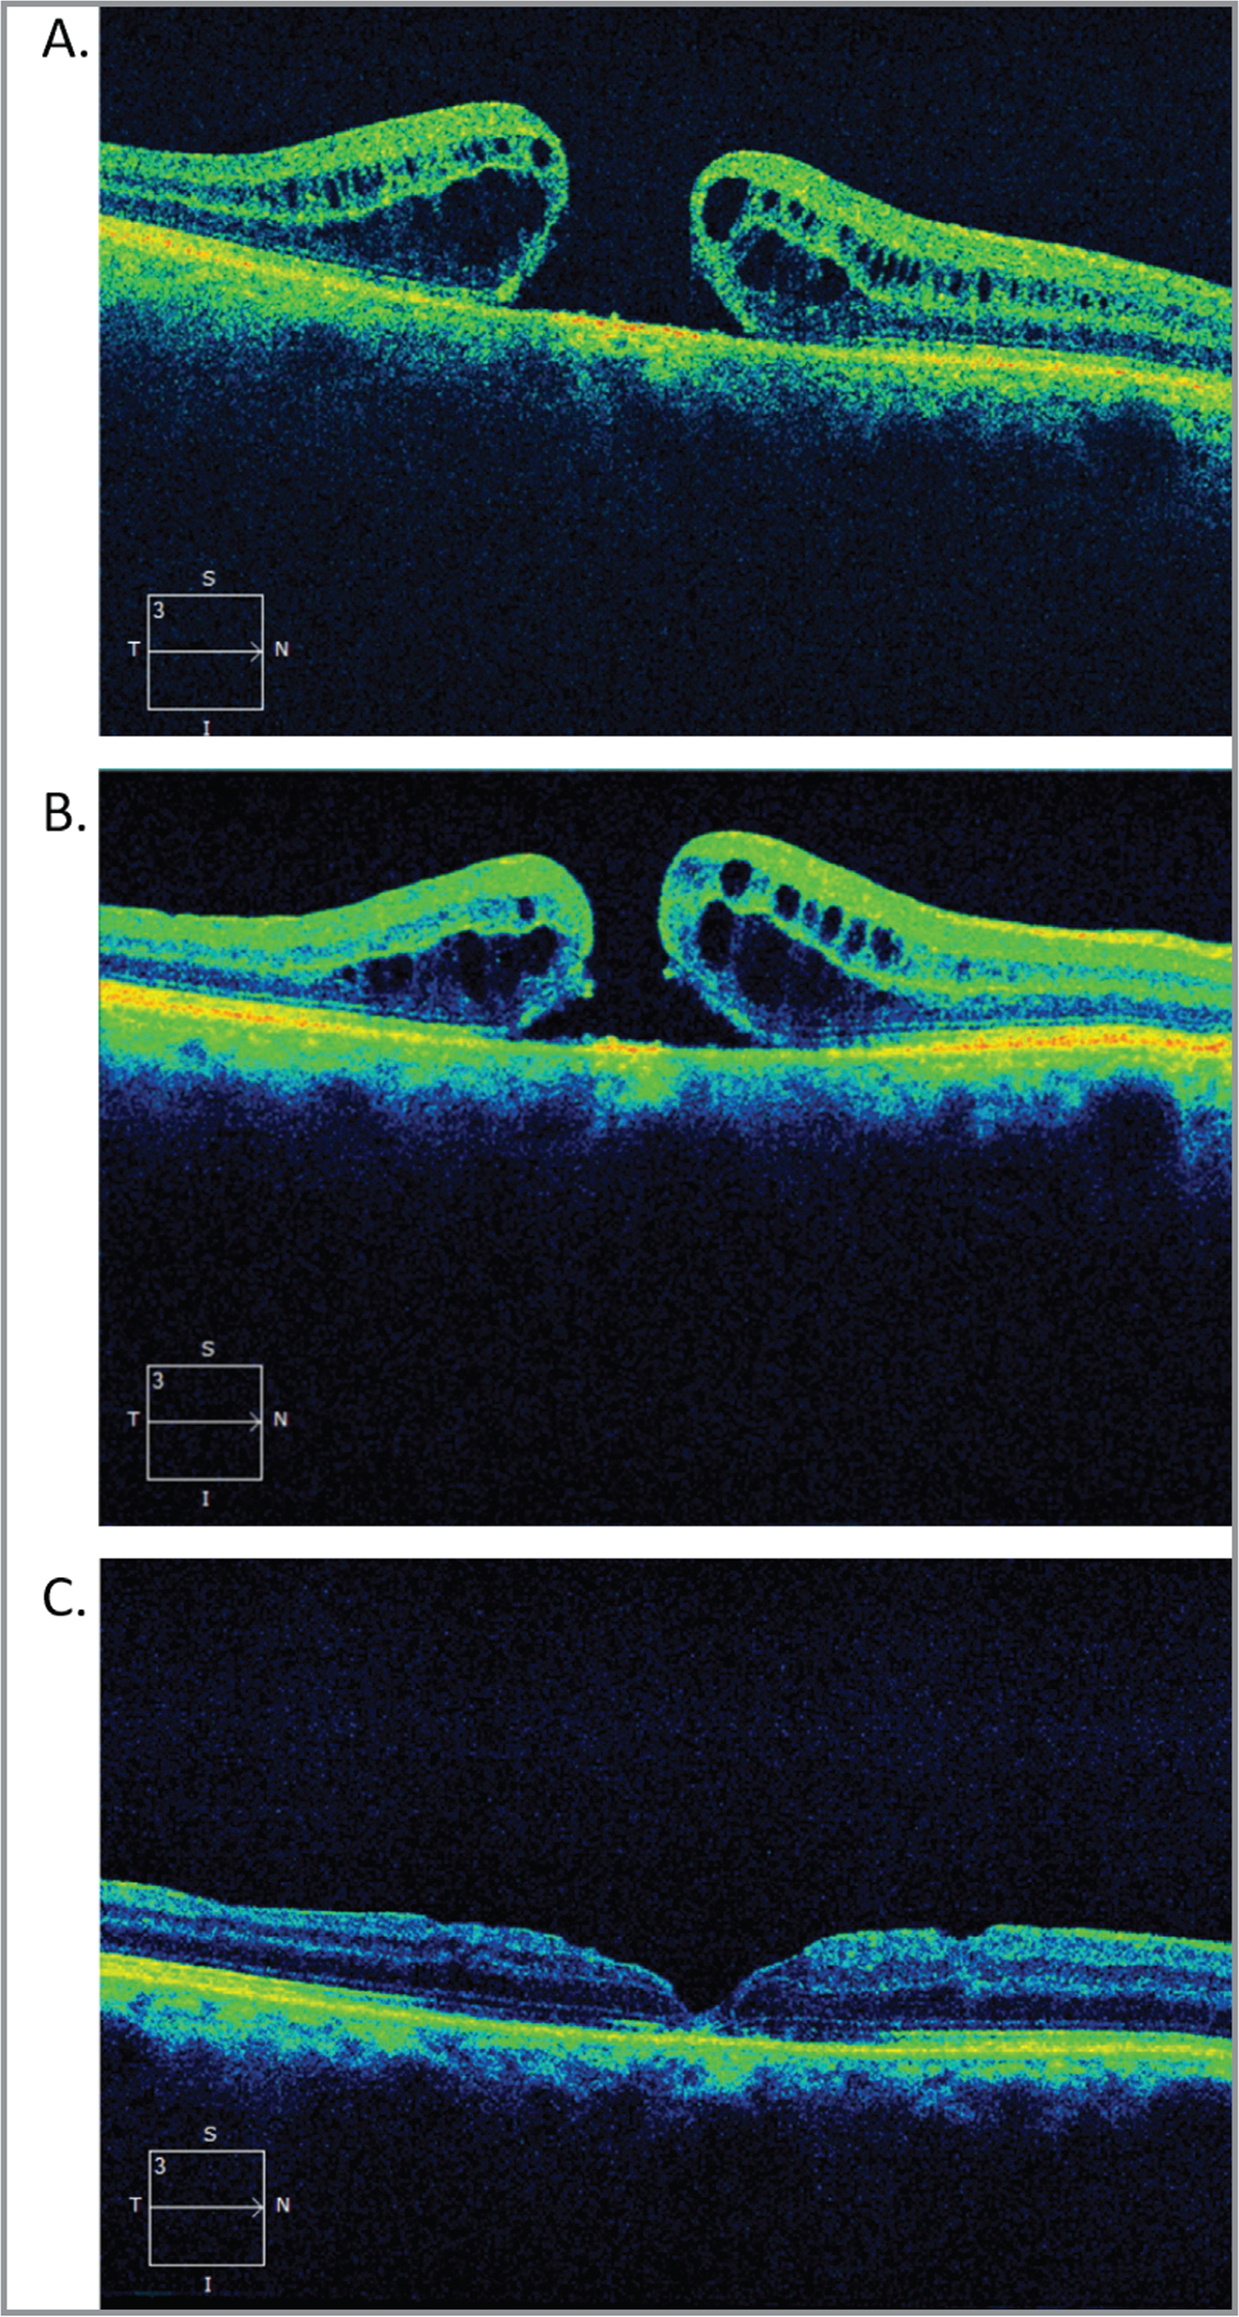 Broader internal limiting membrane (ILM) peeling for a refractory macular hole (MH). A 76-year-old man with recent MH and best-corrected visual acuity (BCVA) of 20/200 (A) underwent vitrectomy, ILM peeling, and gas tamponade with incomplete closure of his MH after 1 month (B) and mild improvement of BCVA to 20/100. A subsequent broader ILM peel was performed and repeat gas tamponade with resulting closure of the MH (C) 1 month after surgery and improvement in BCVA to 20/30.